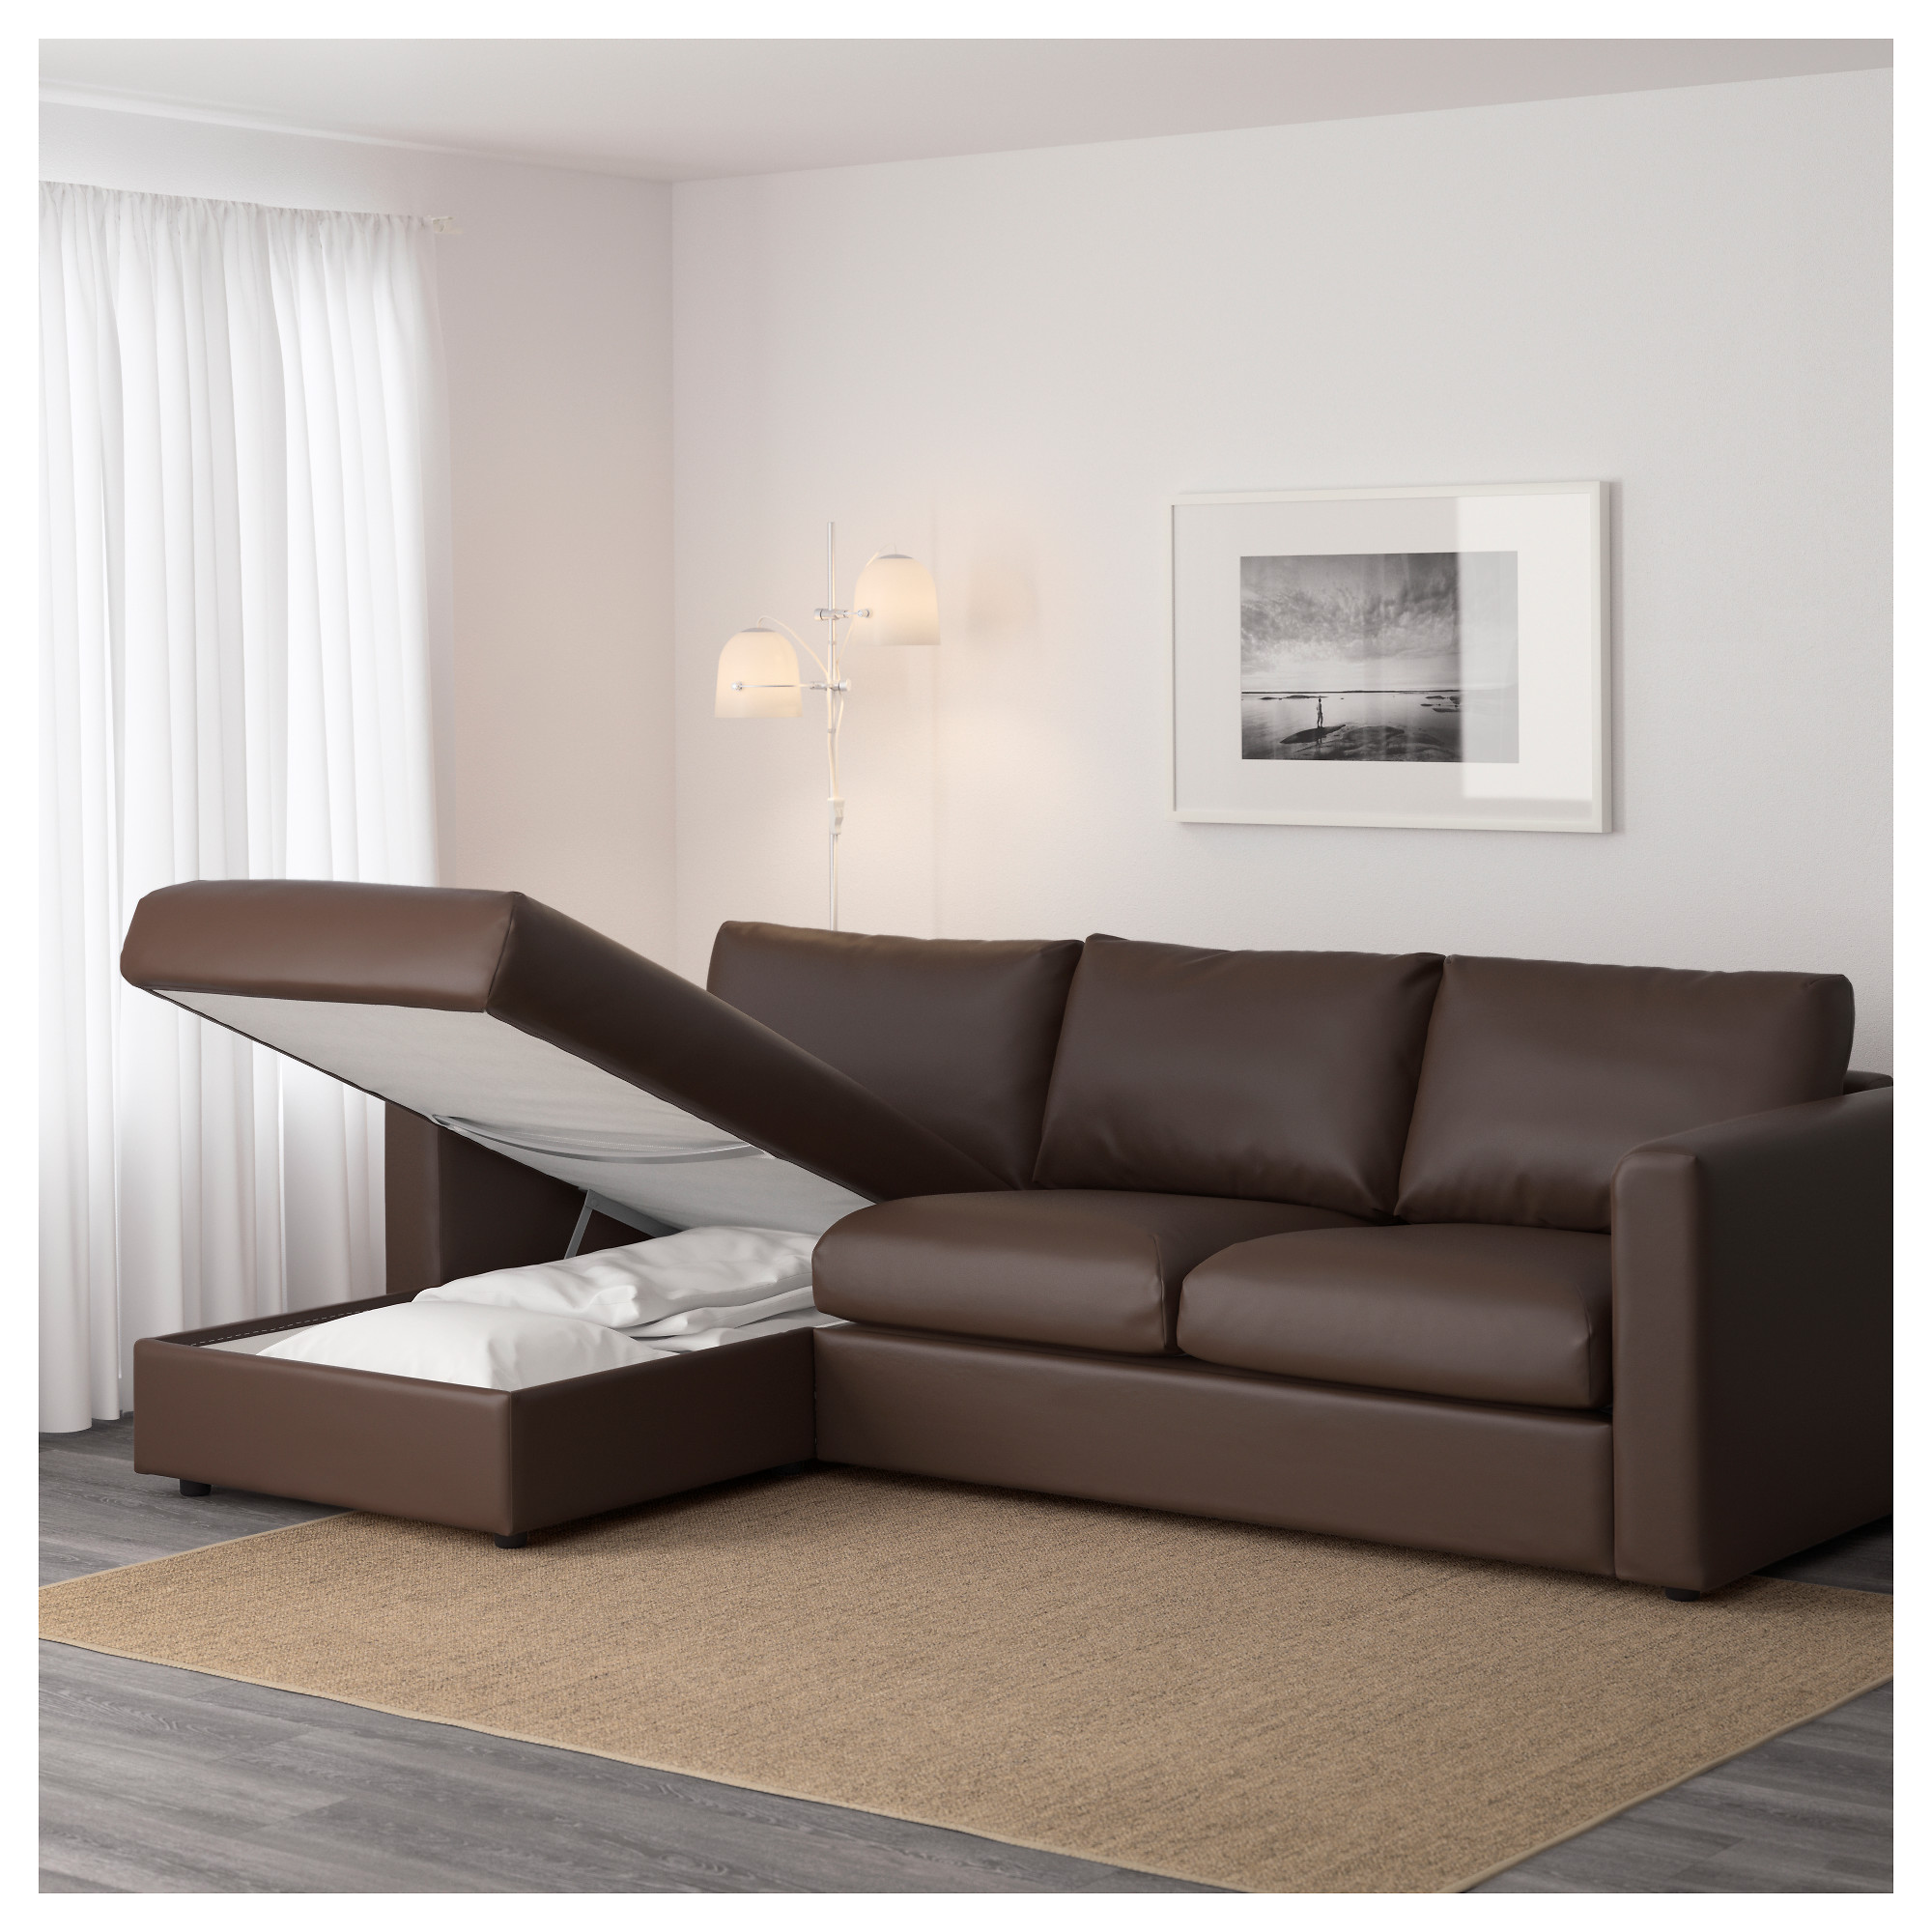 piece sectional number item and sofa couch maier benchcraft sleeper charcoal products w left chaise